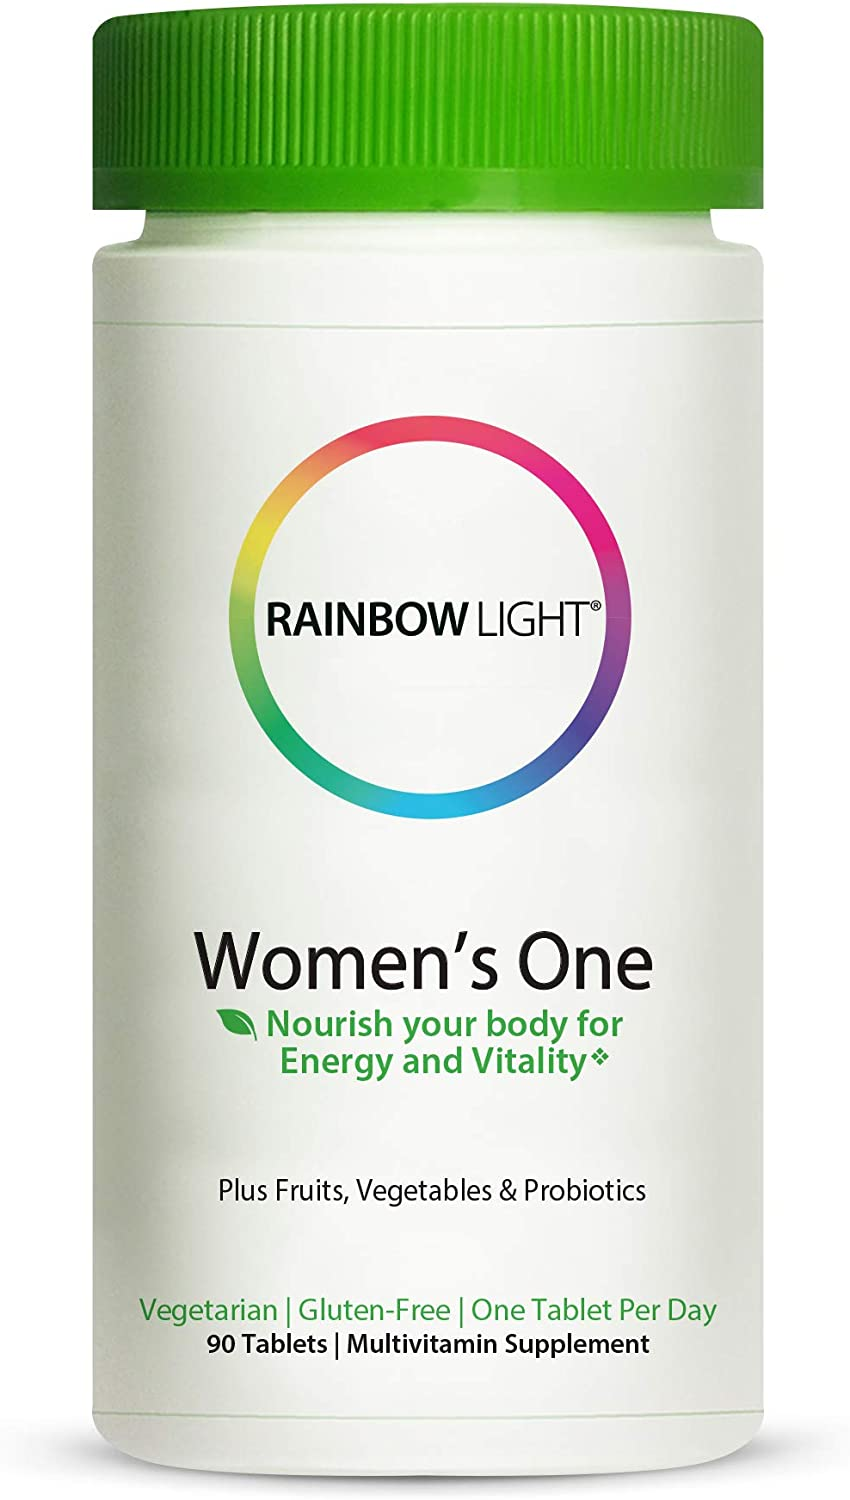 Rainbow Light - Women's One Multivitamin, 90 Count (Pack of 1)